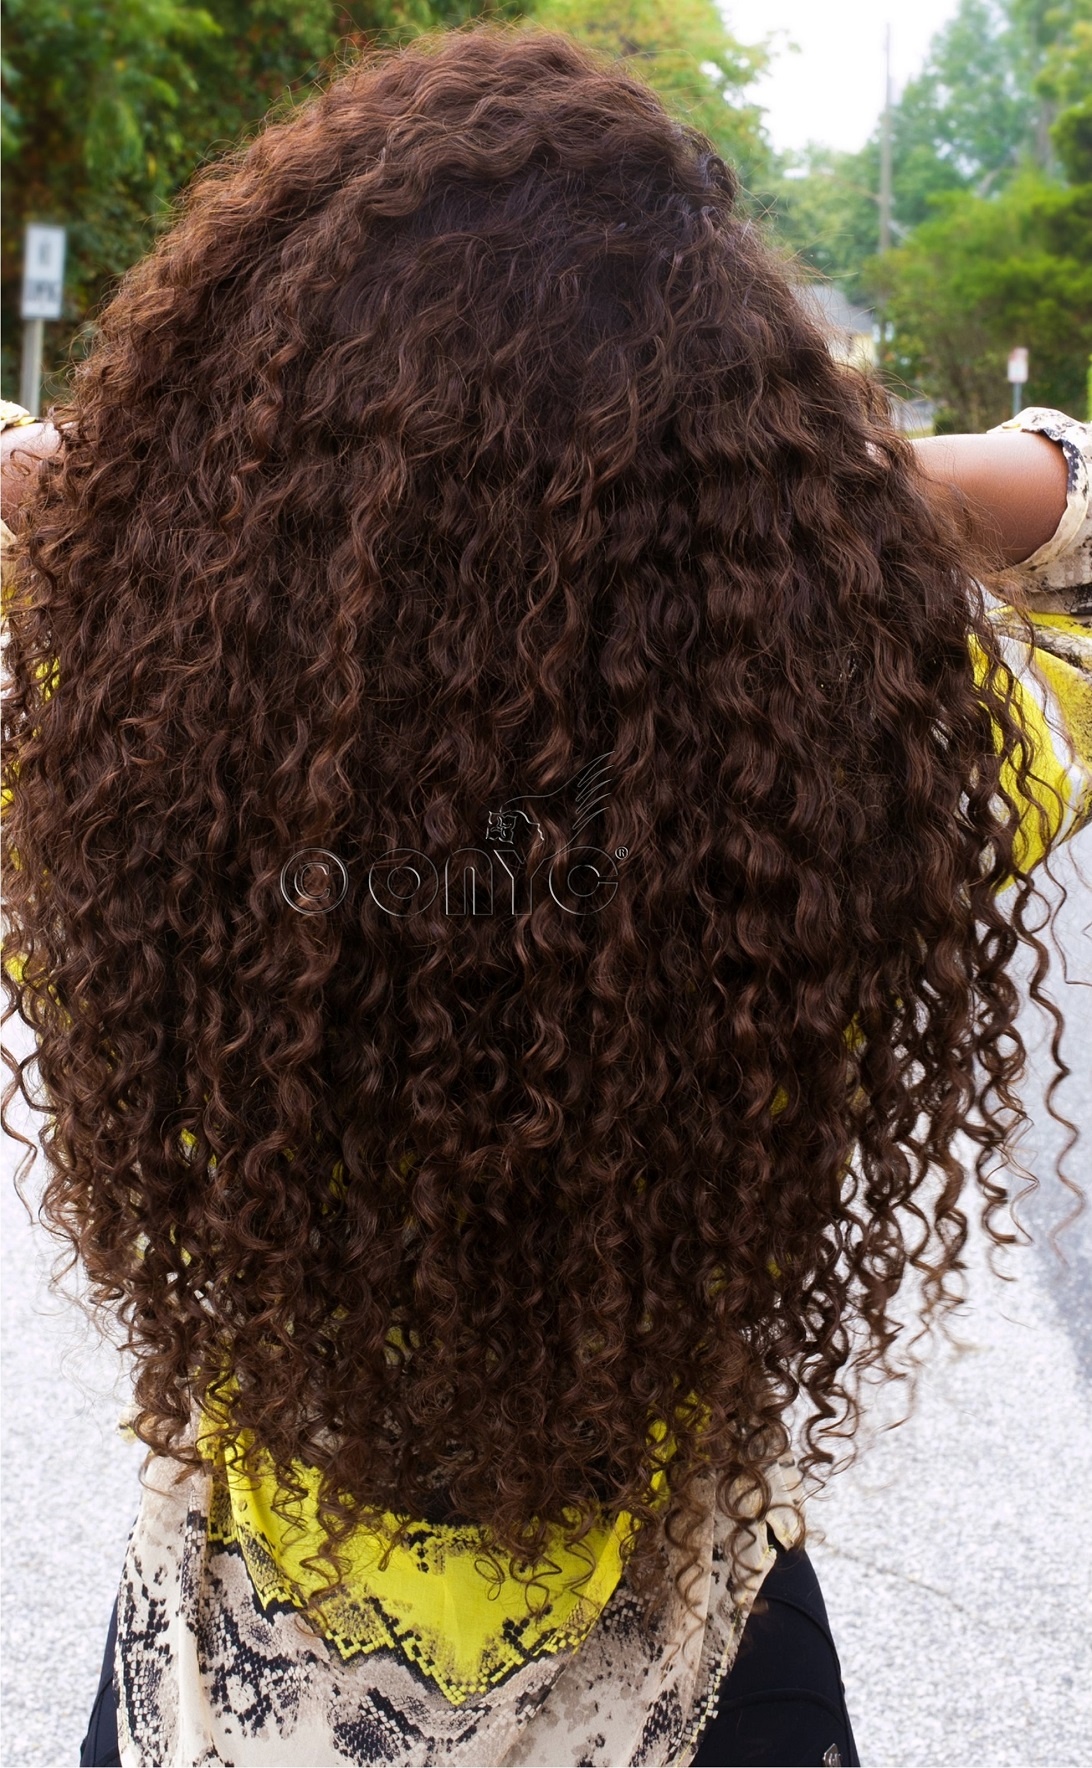 Thelma Okoro in Curly Addiction Color 4 and color 2 back